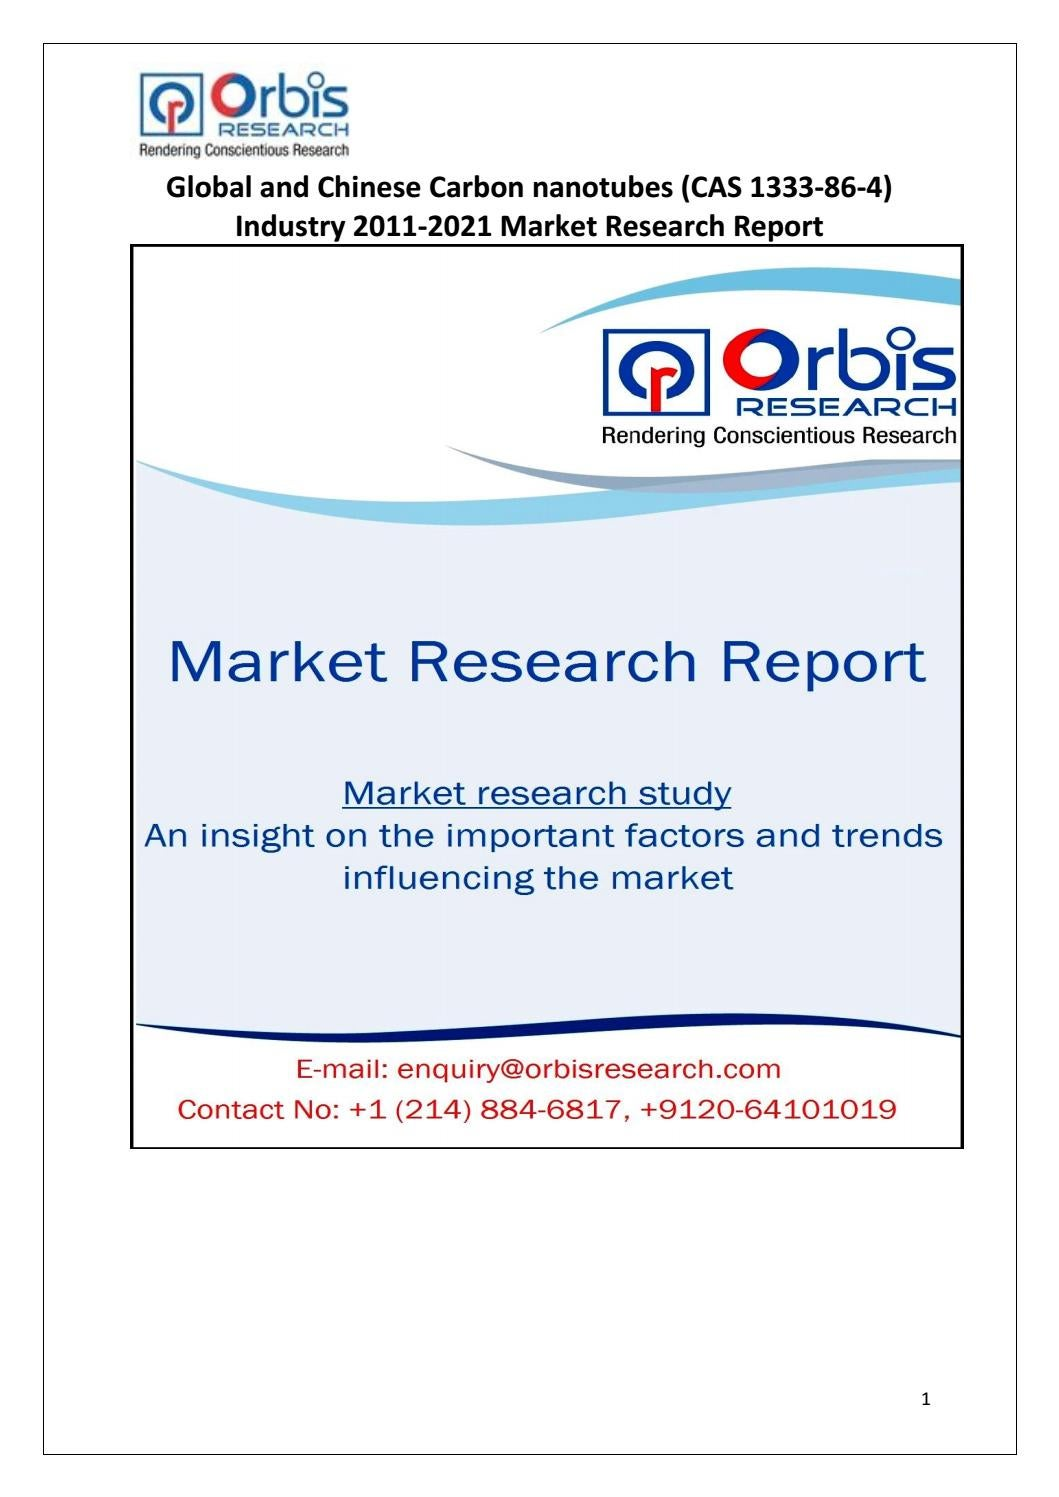 Carbon nanotubes (CAS 1333-86-4) Market Globally and in